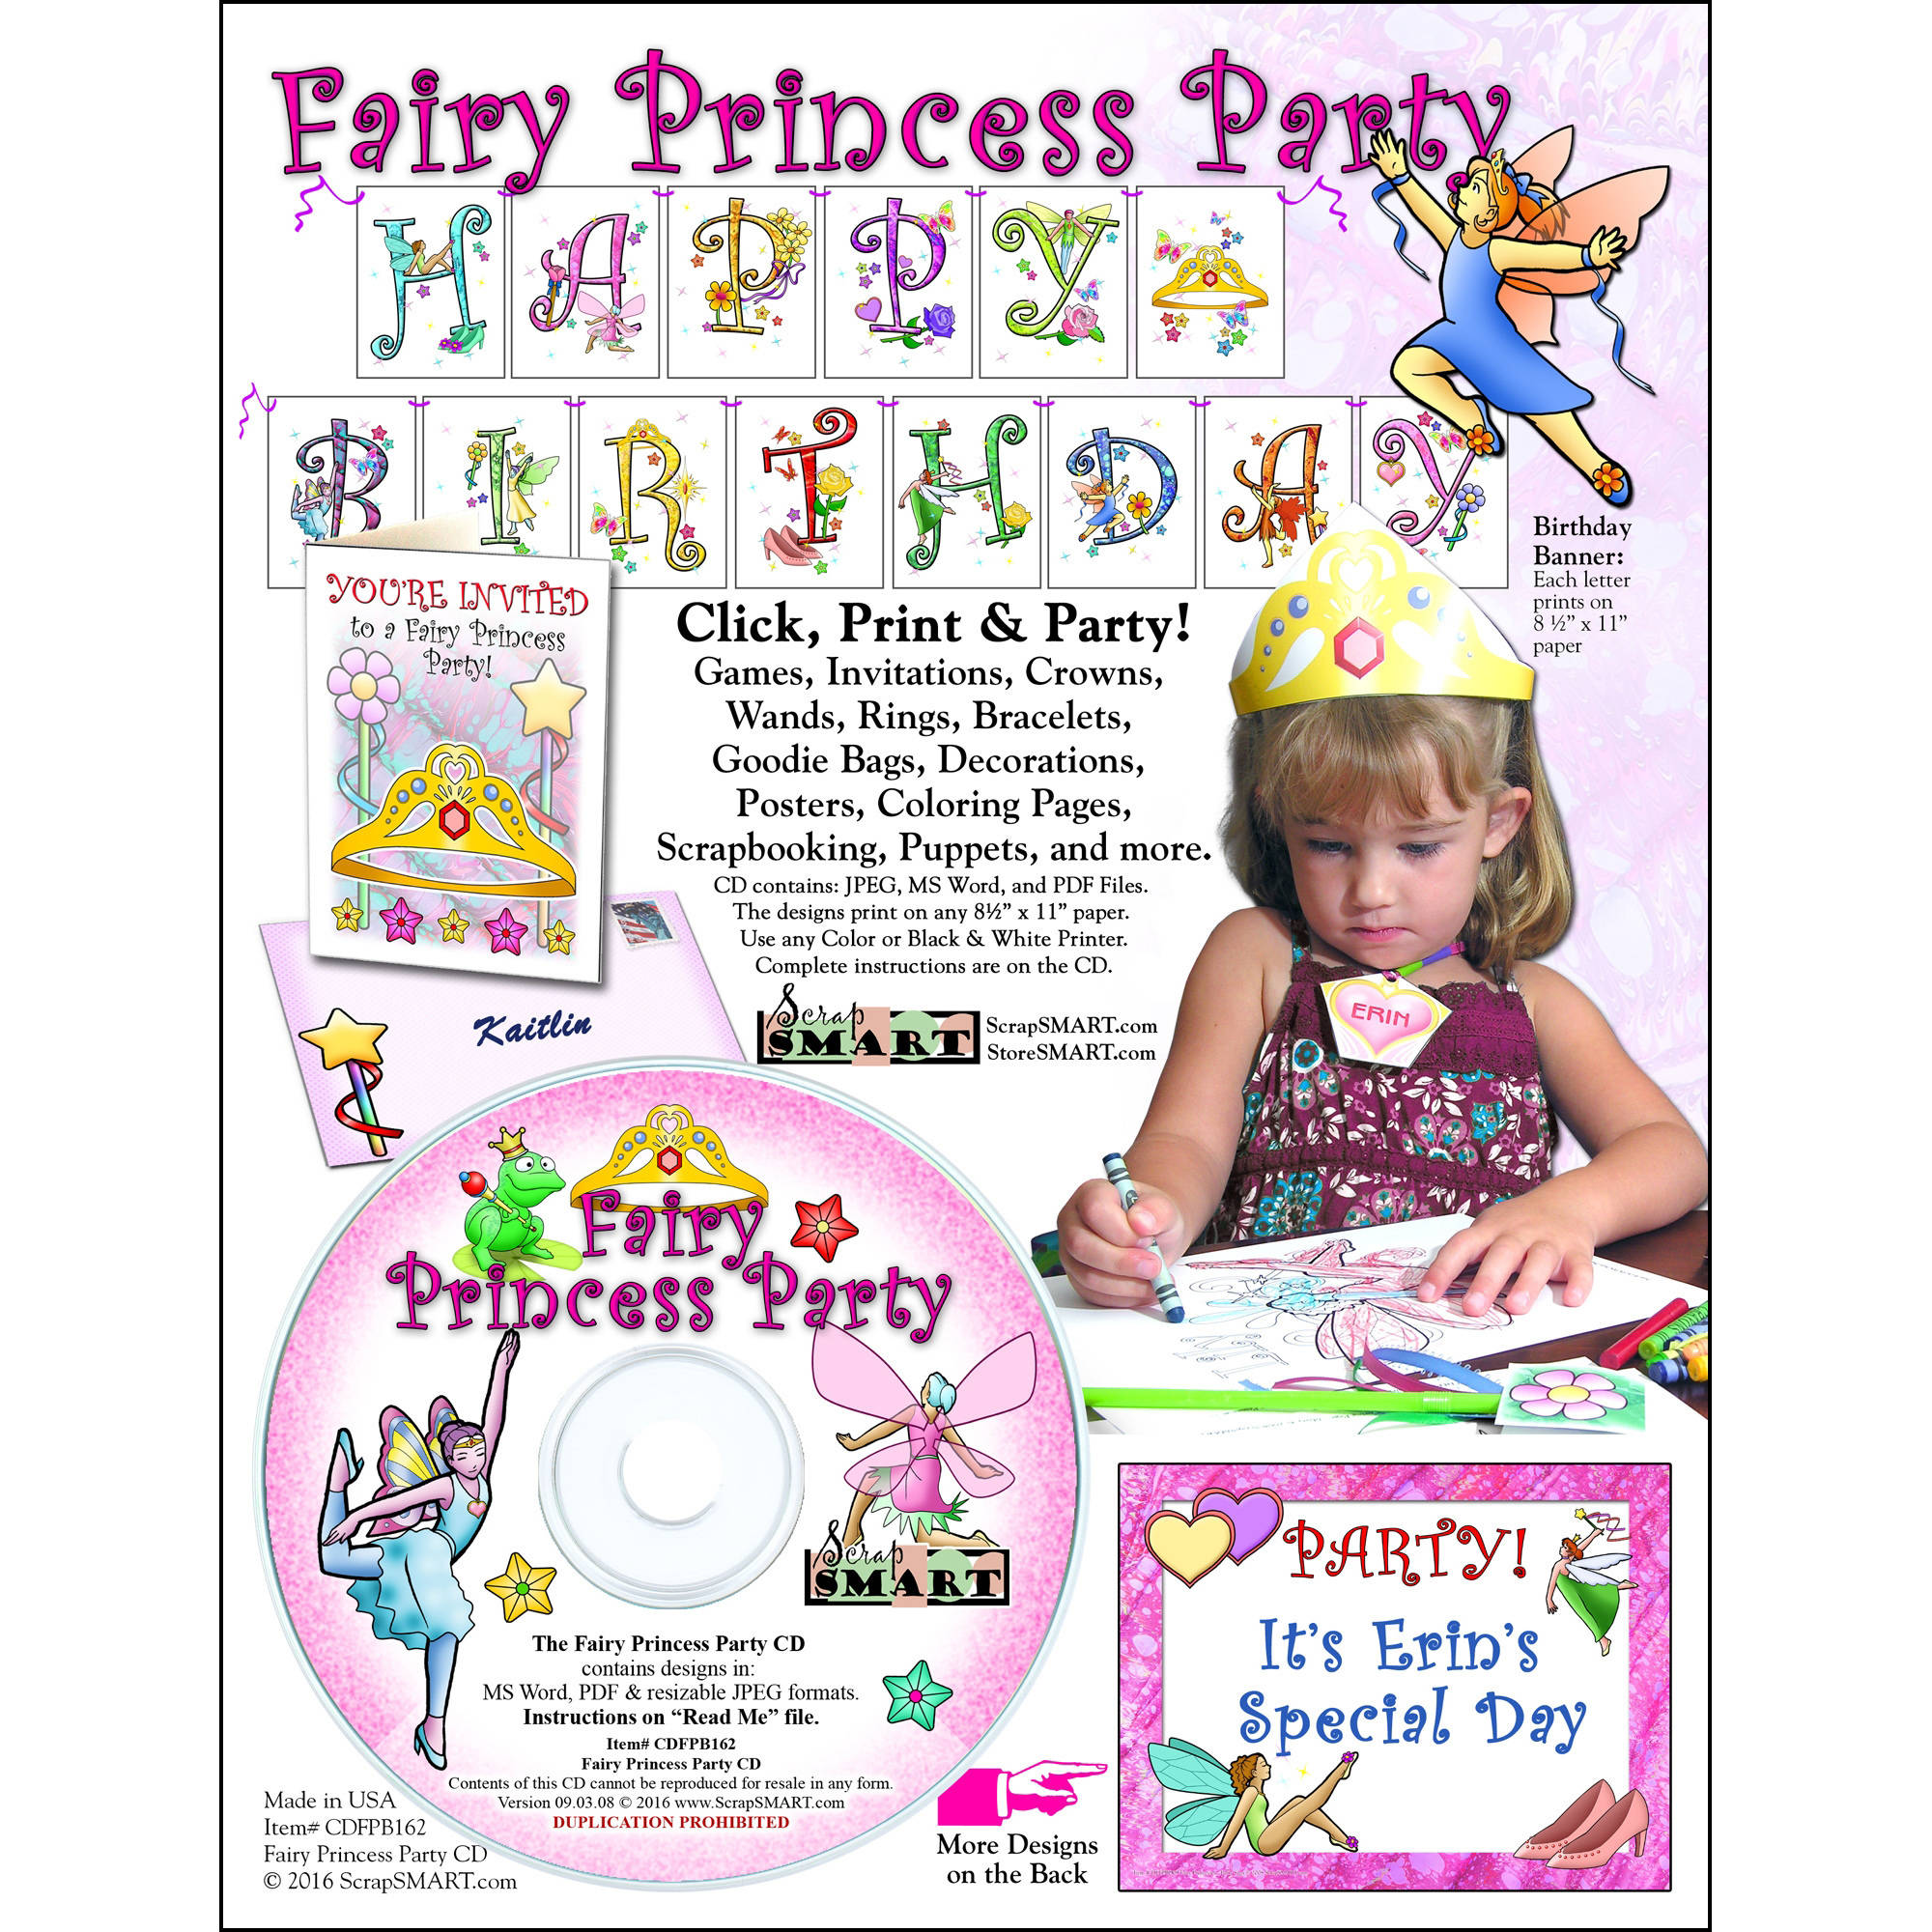 ScrapSMART Fairy Princess Party CD-ROM: Decorations, Crafts, Scrapbook and Coloring Pages